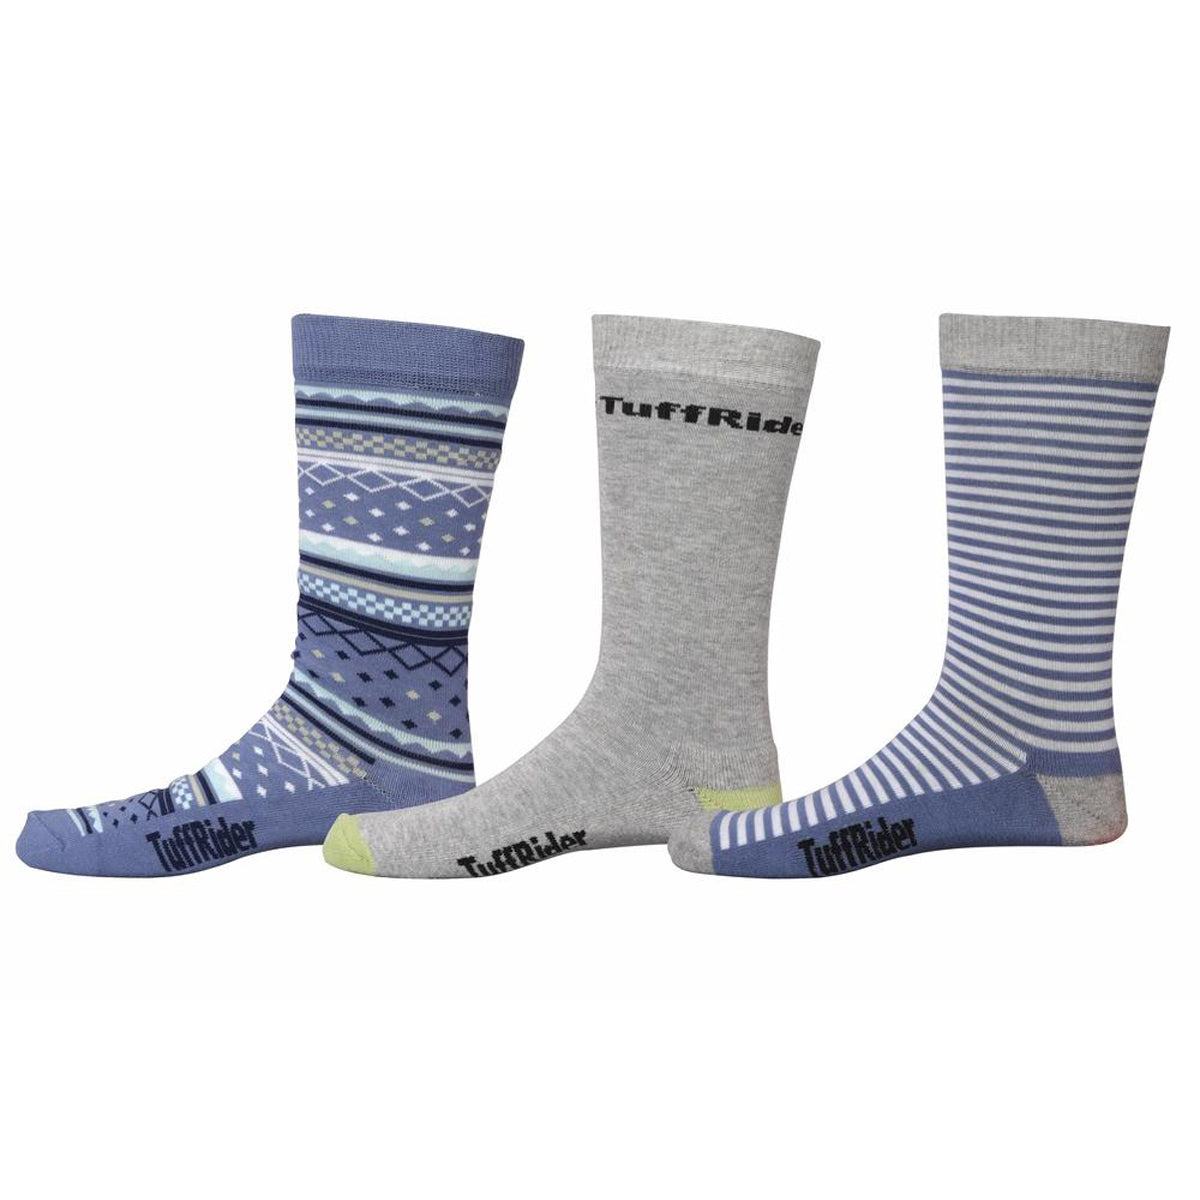 TuffRider Hera Kids Socks 3 Pack